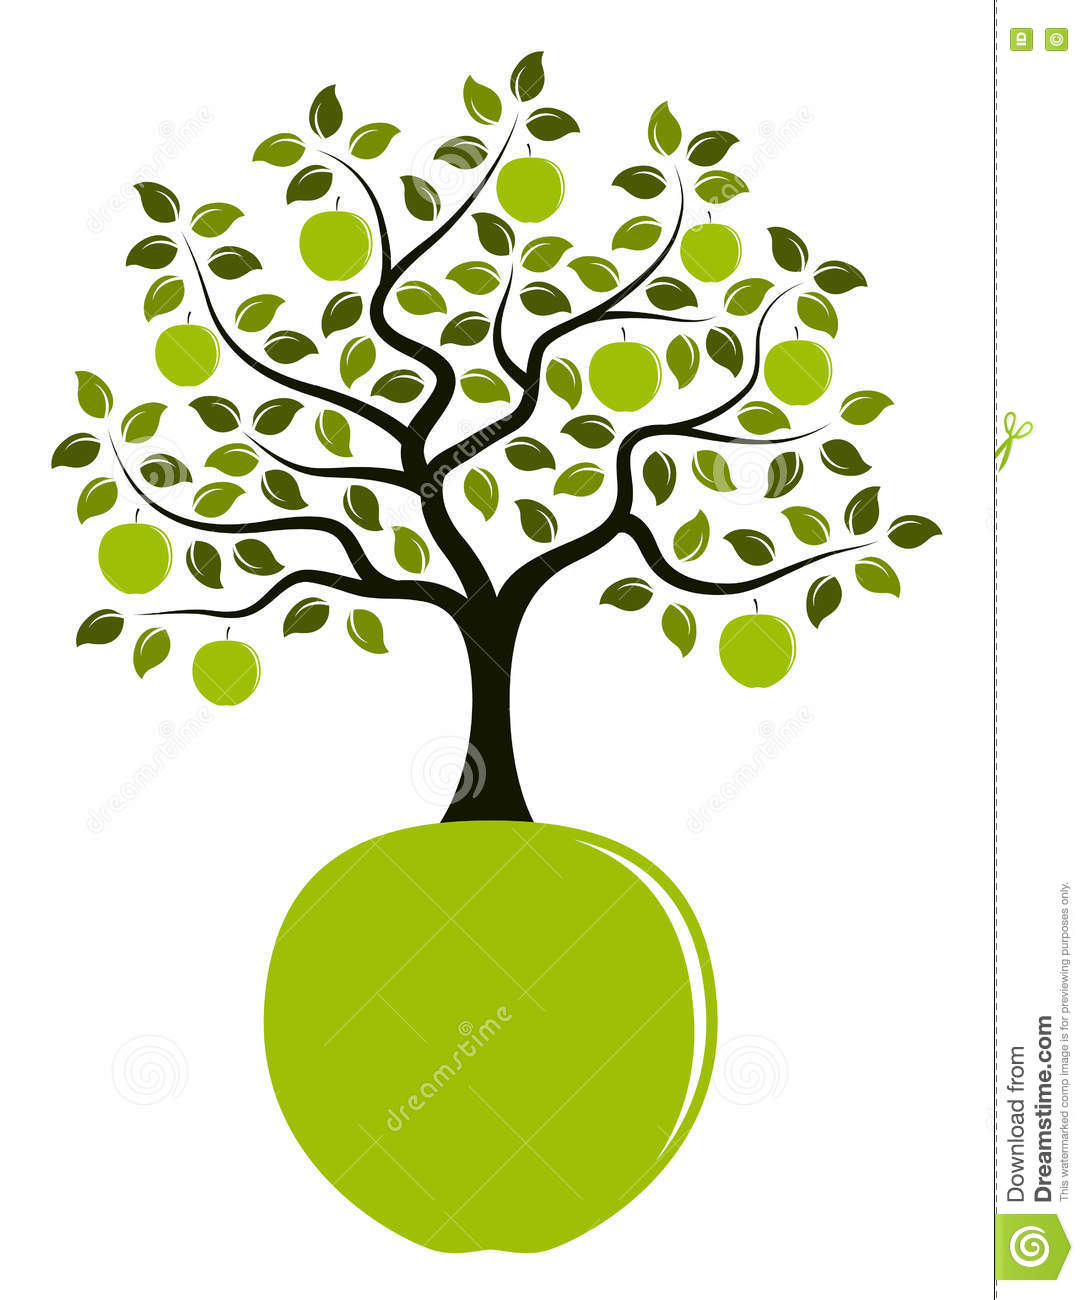 Apple Tree Growing From Apple Stock Vector Illustration Of Grow